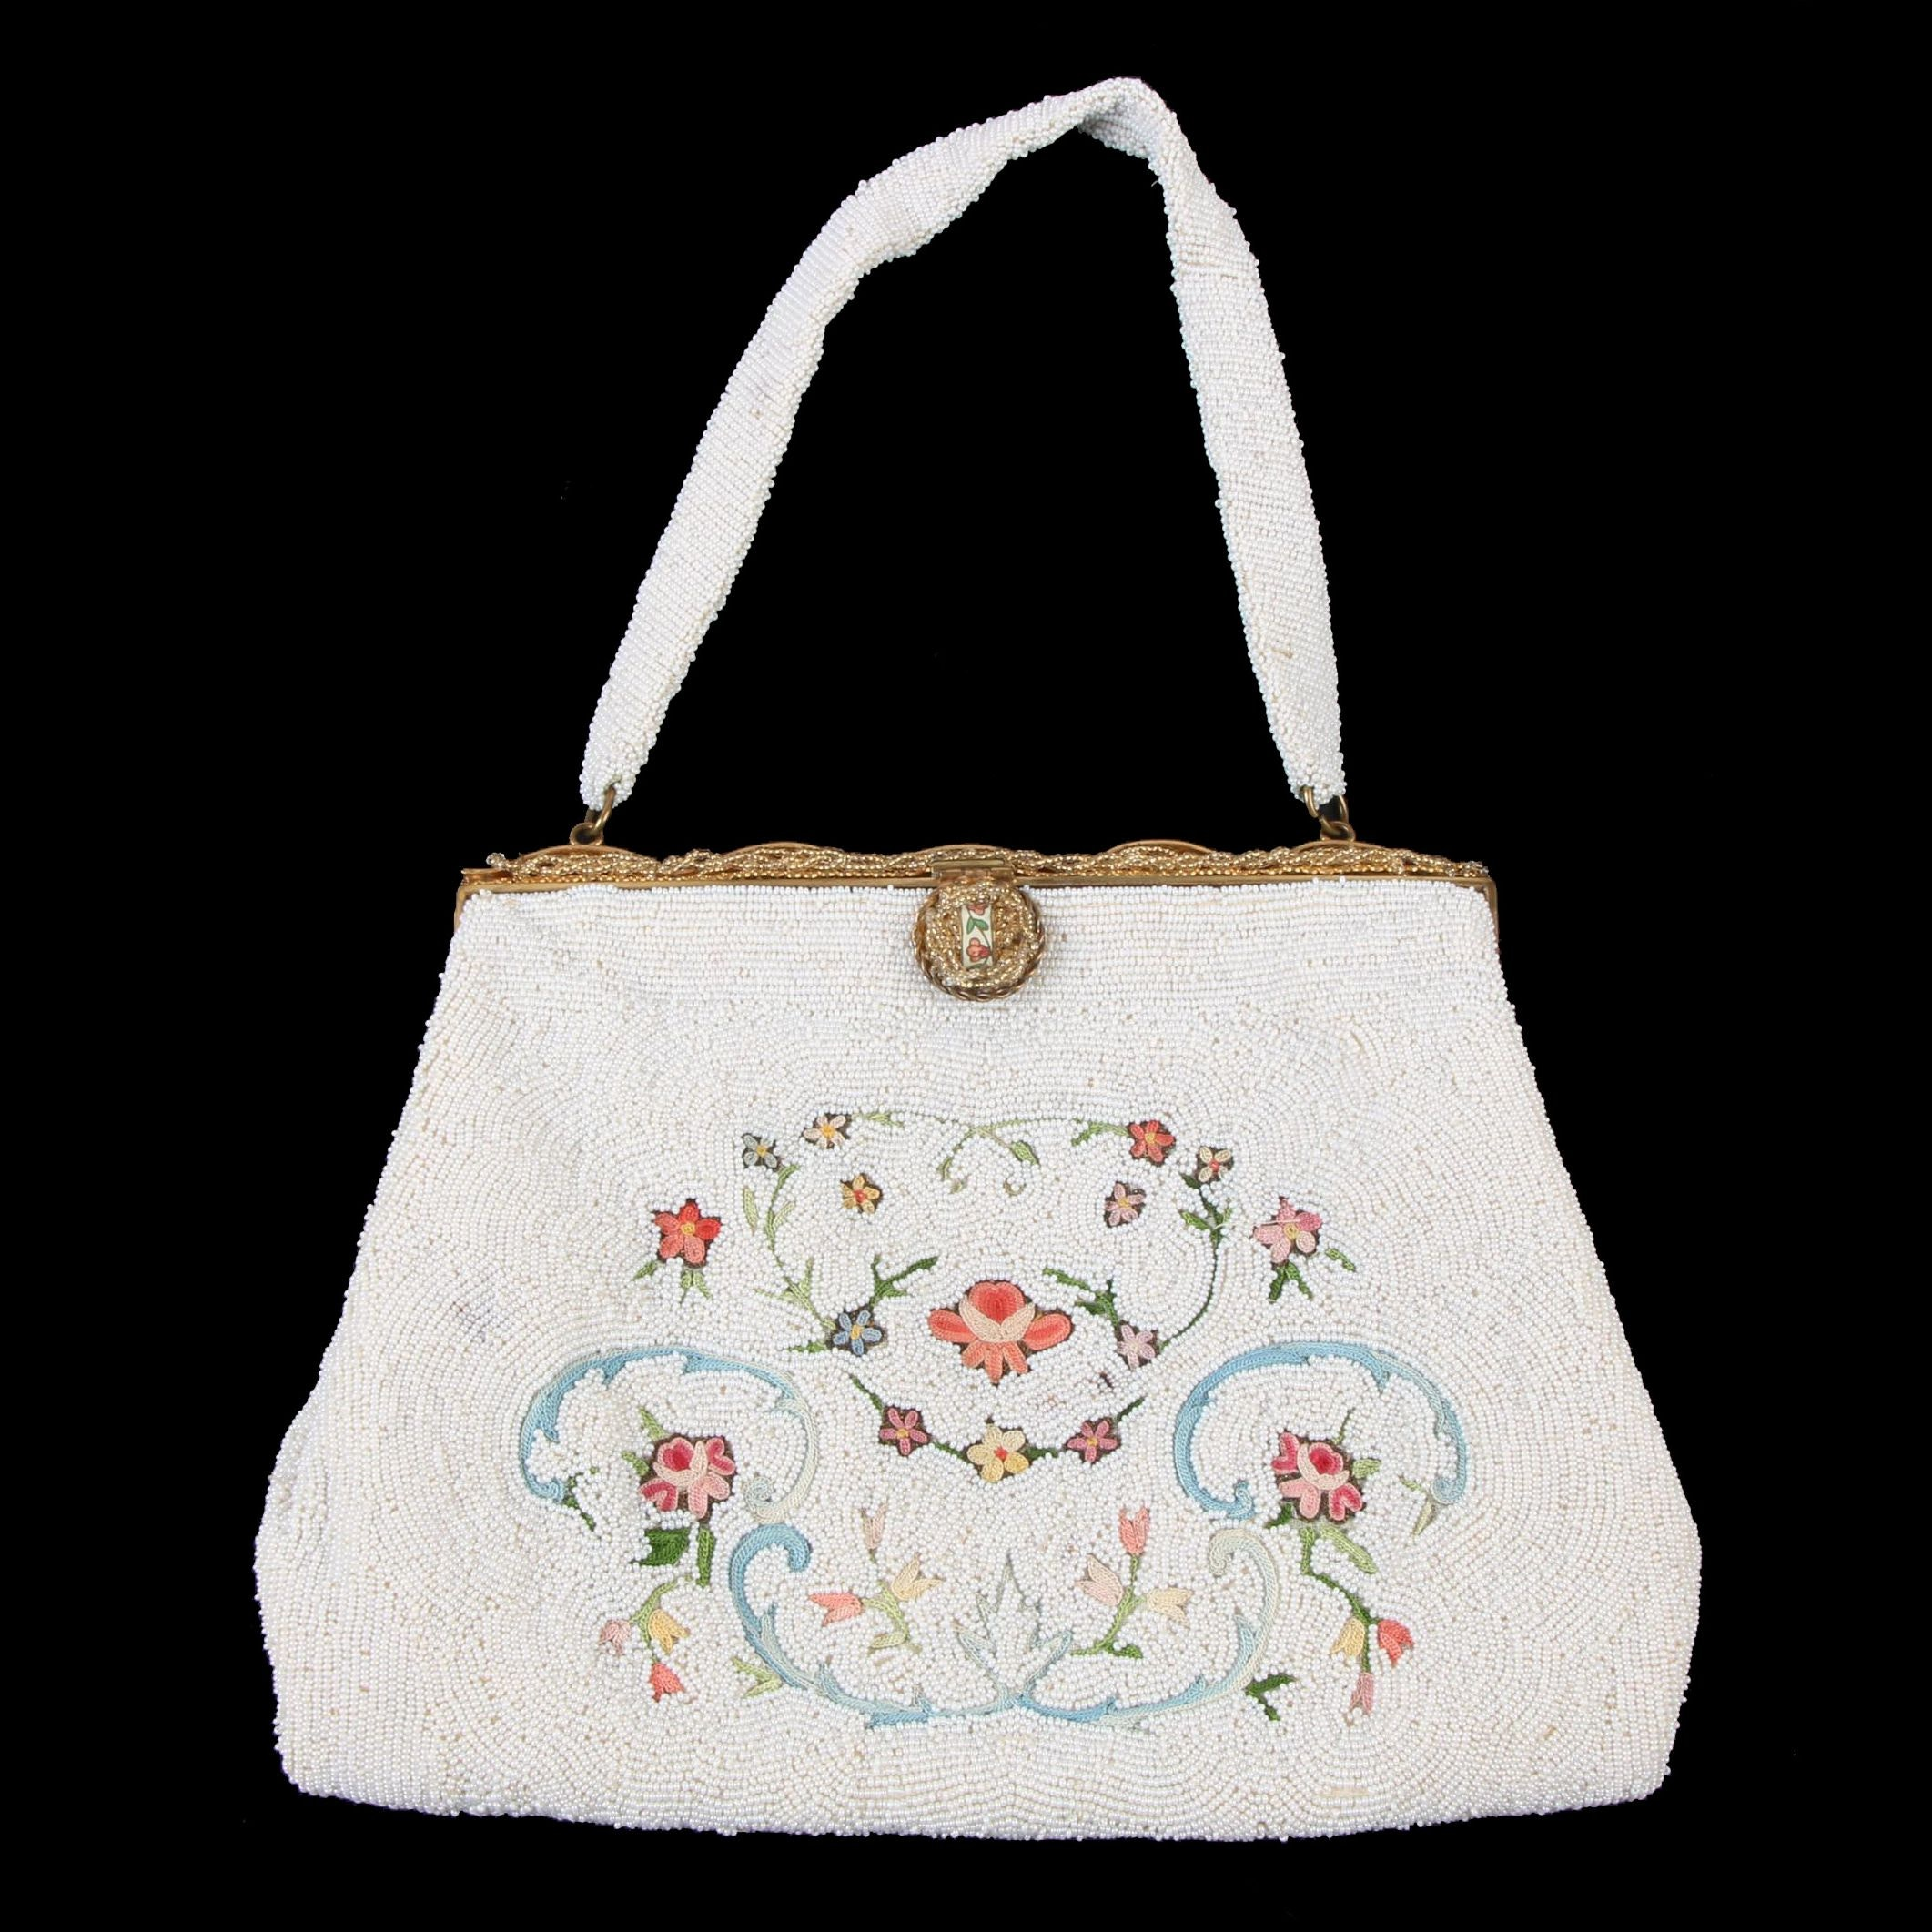 Odette Paris Microbead and Embroidered Evening Bag with Enamel Accent Frame